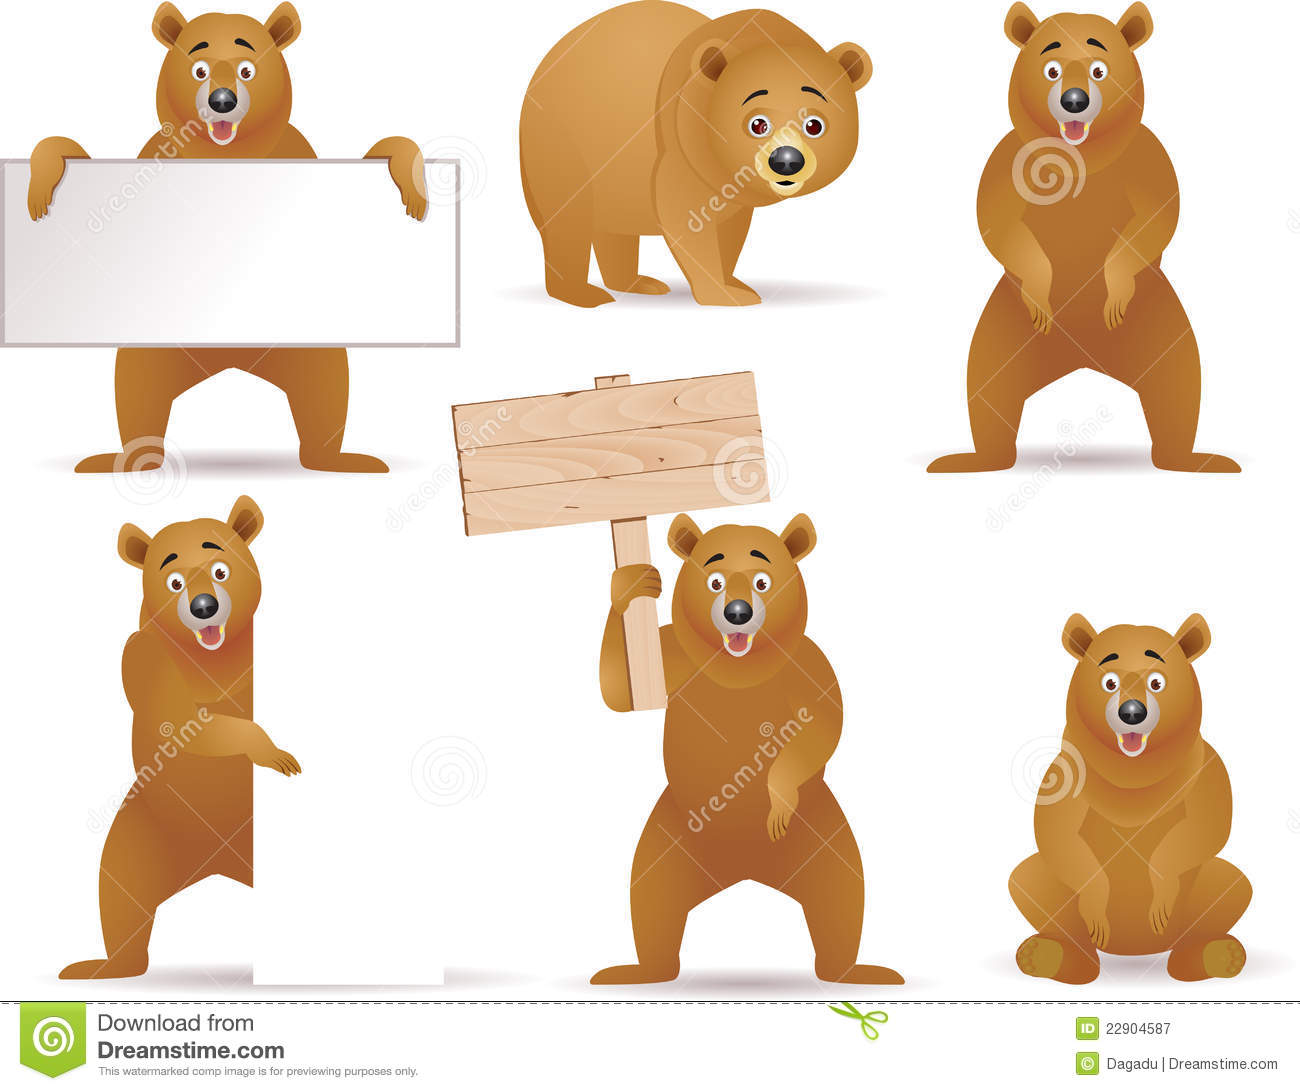 Polygonal bear illustration Vector  Free Download